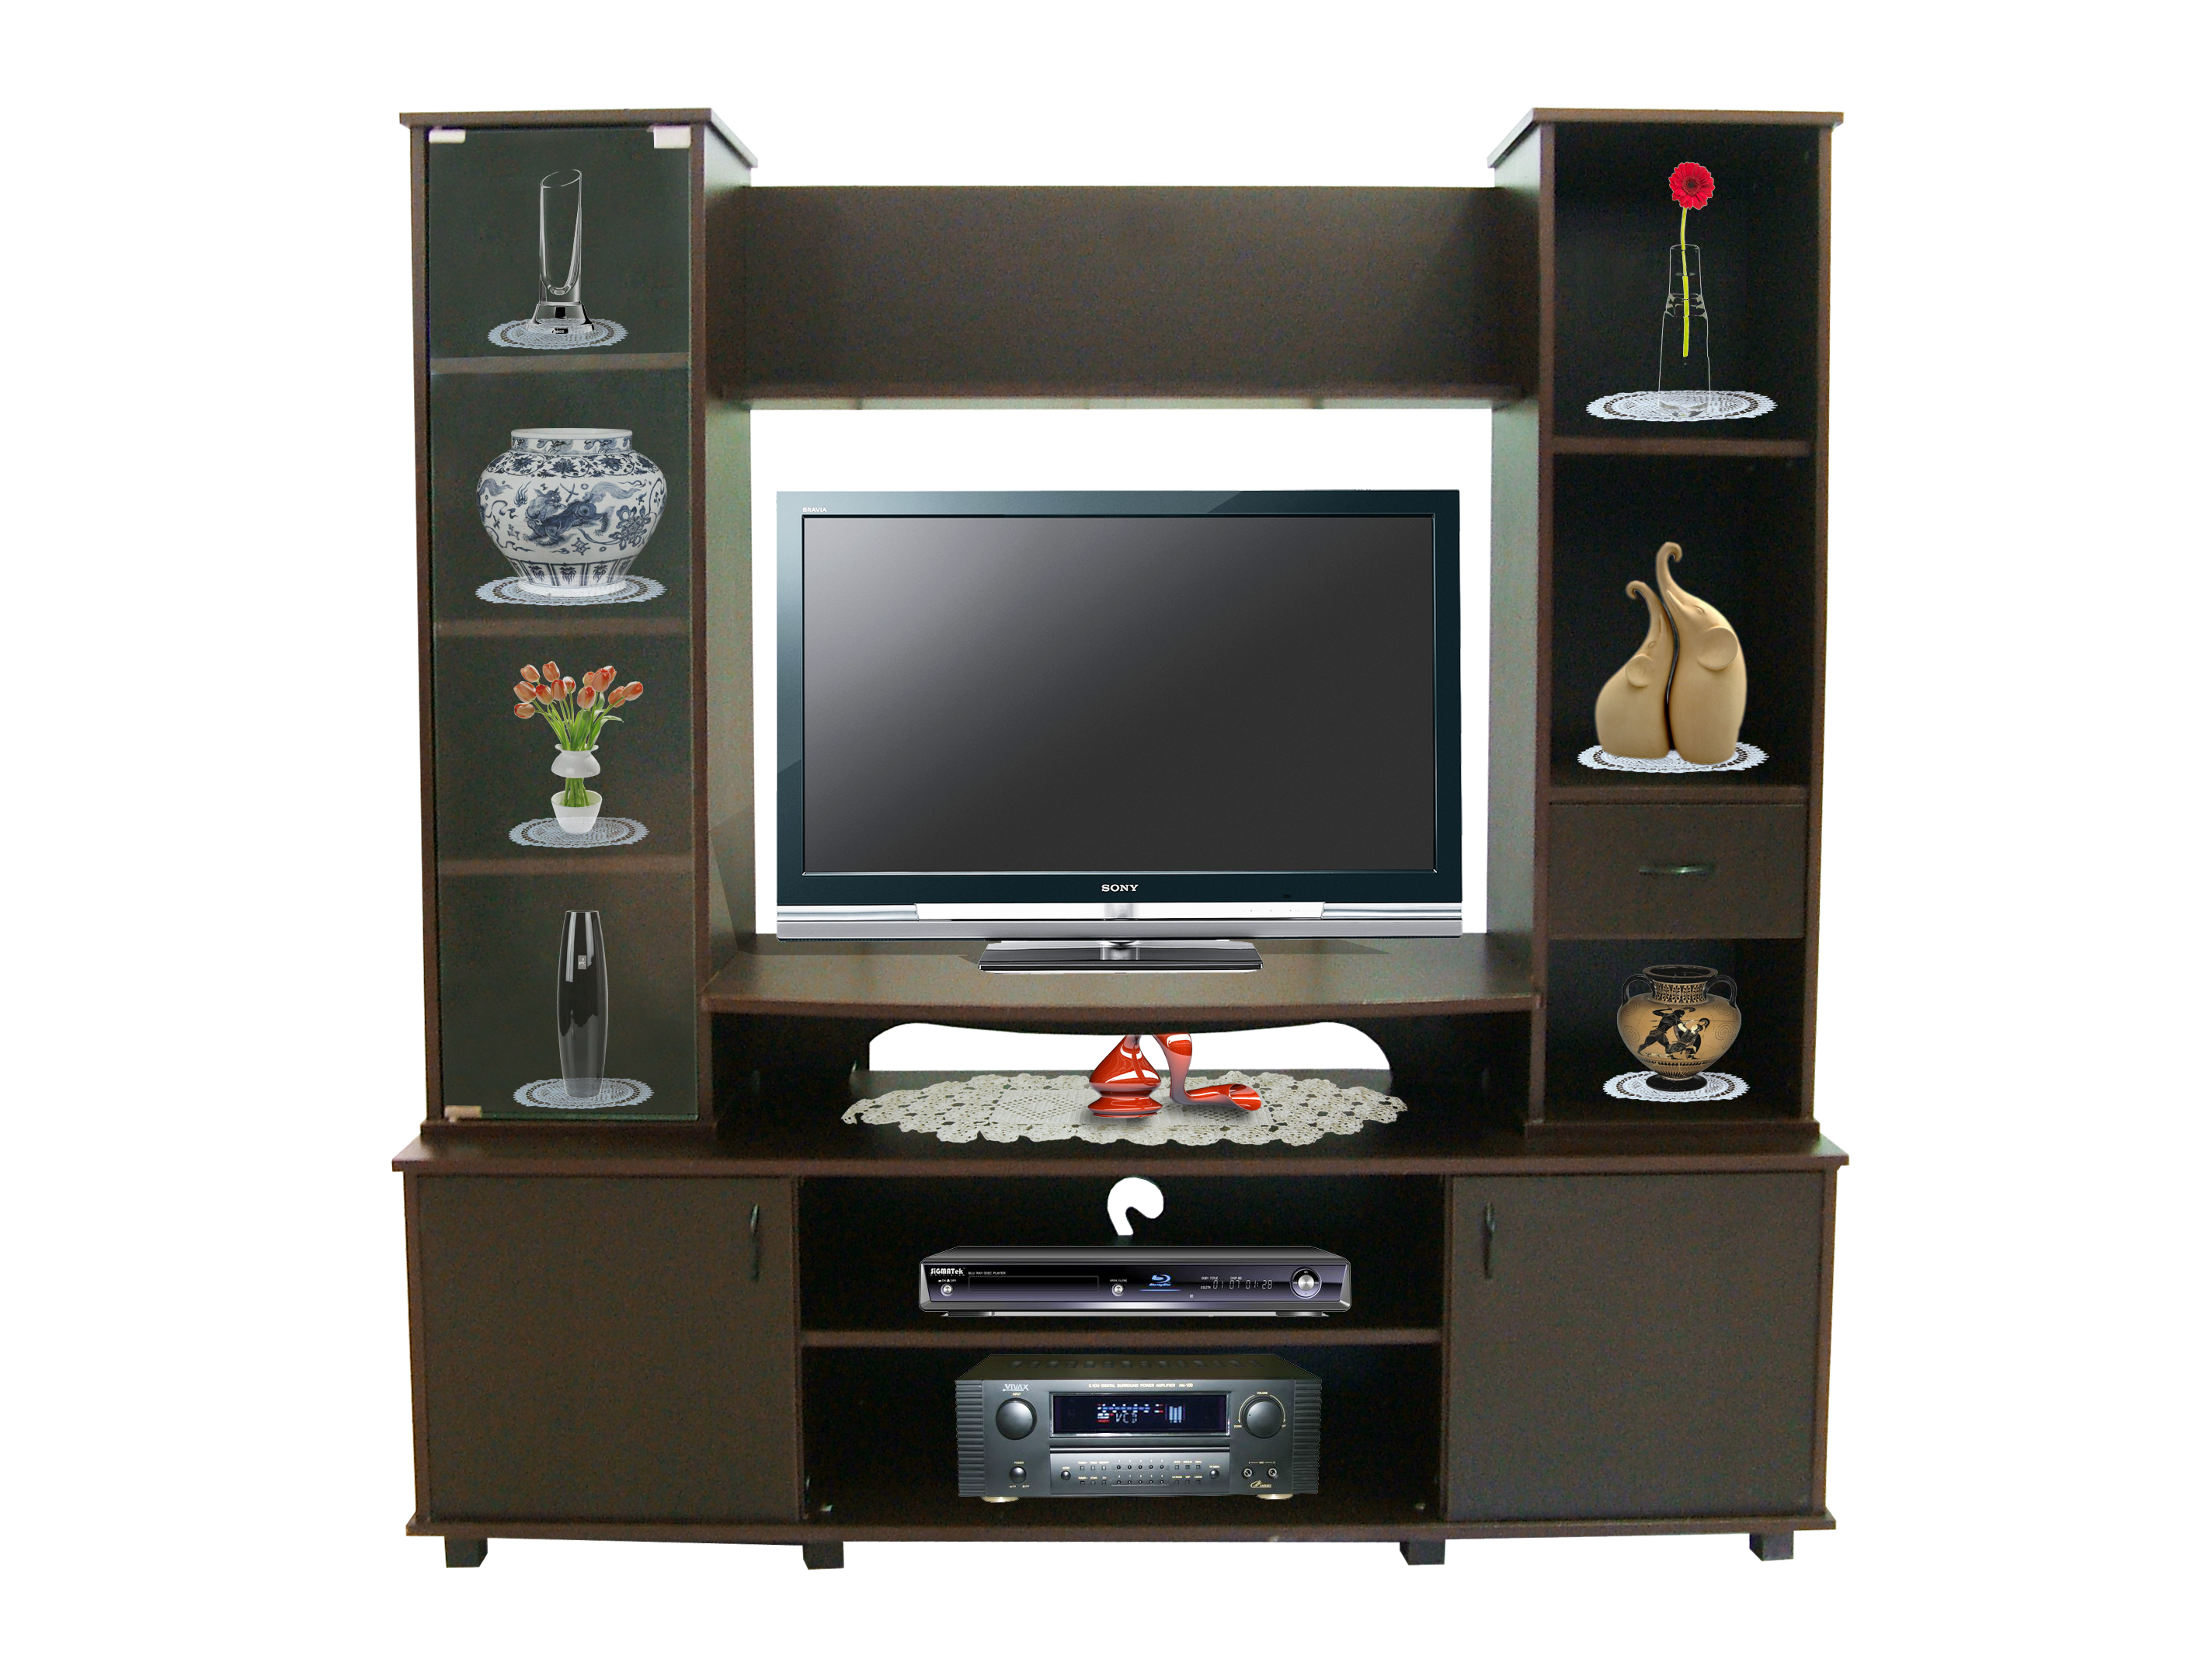 meuble tv tunisie prix sammlung von design zeichnungen als inspirierendes design. Black Bedroom Furniture Sets. Home Design Ideas